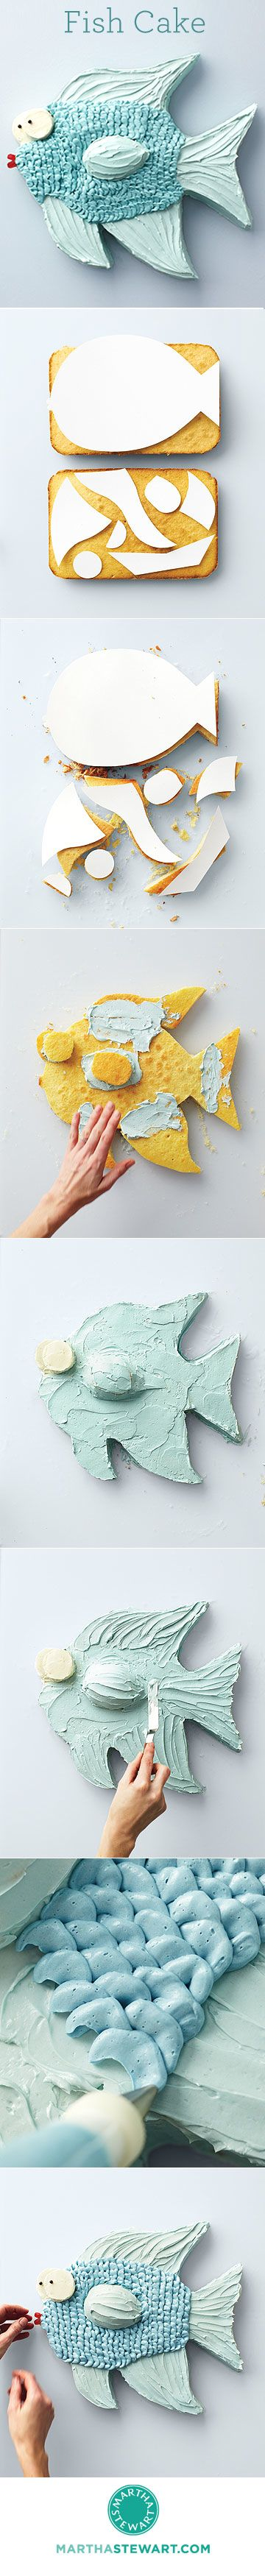 Fish Cake How-To. this is soooo cool!